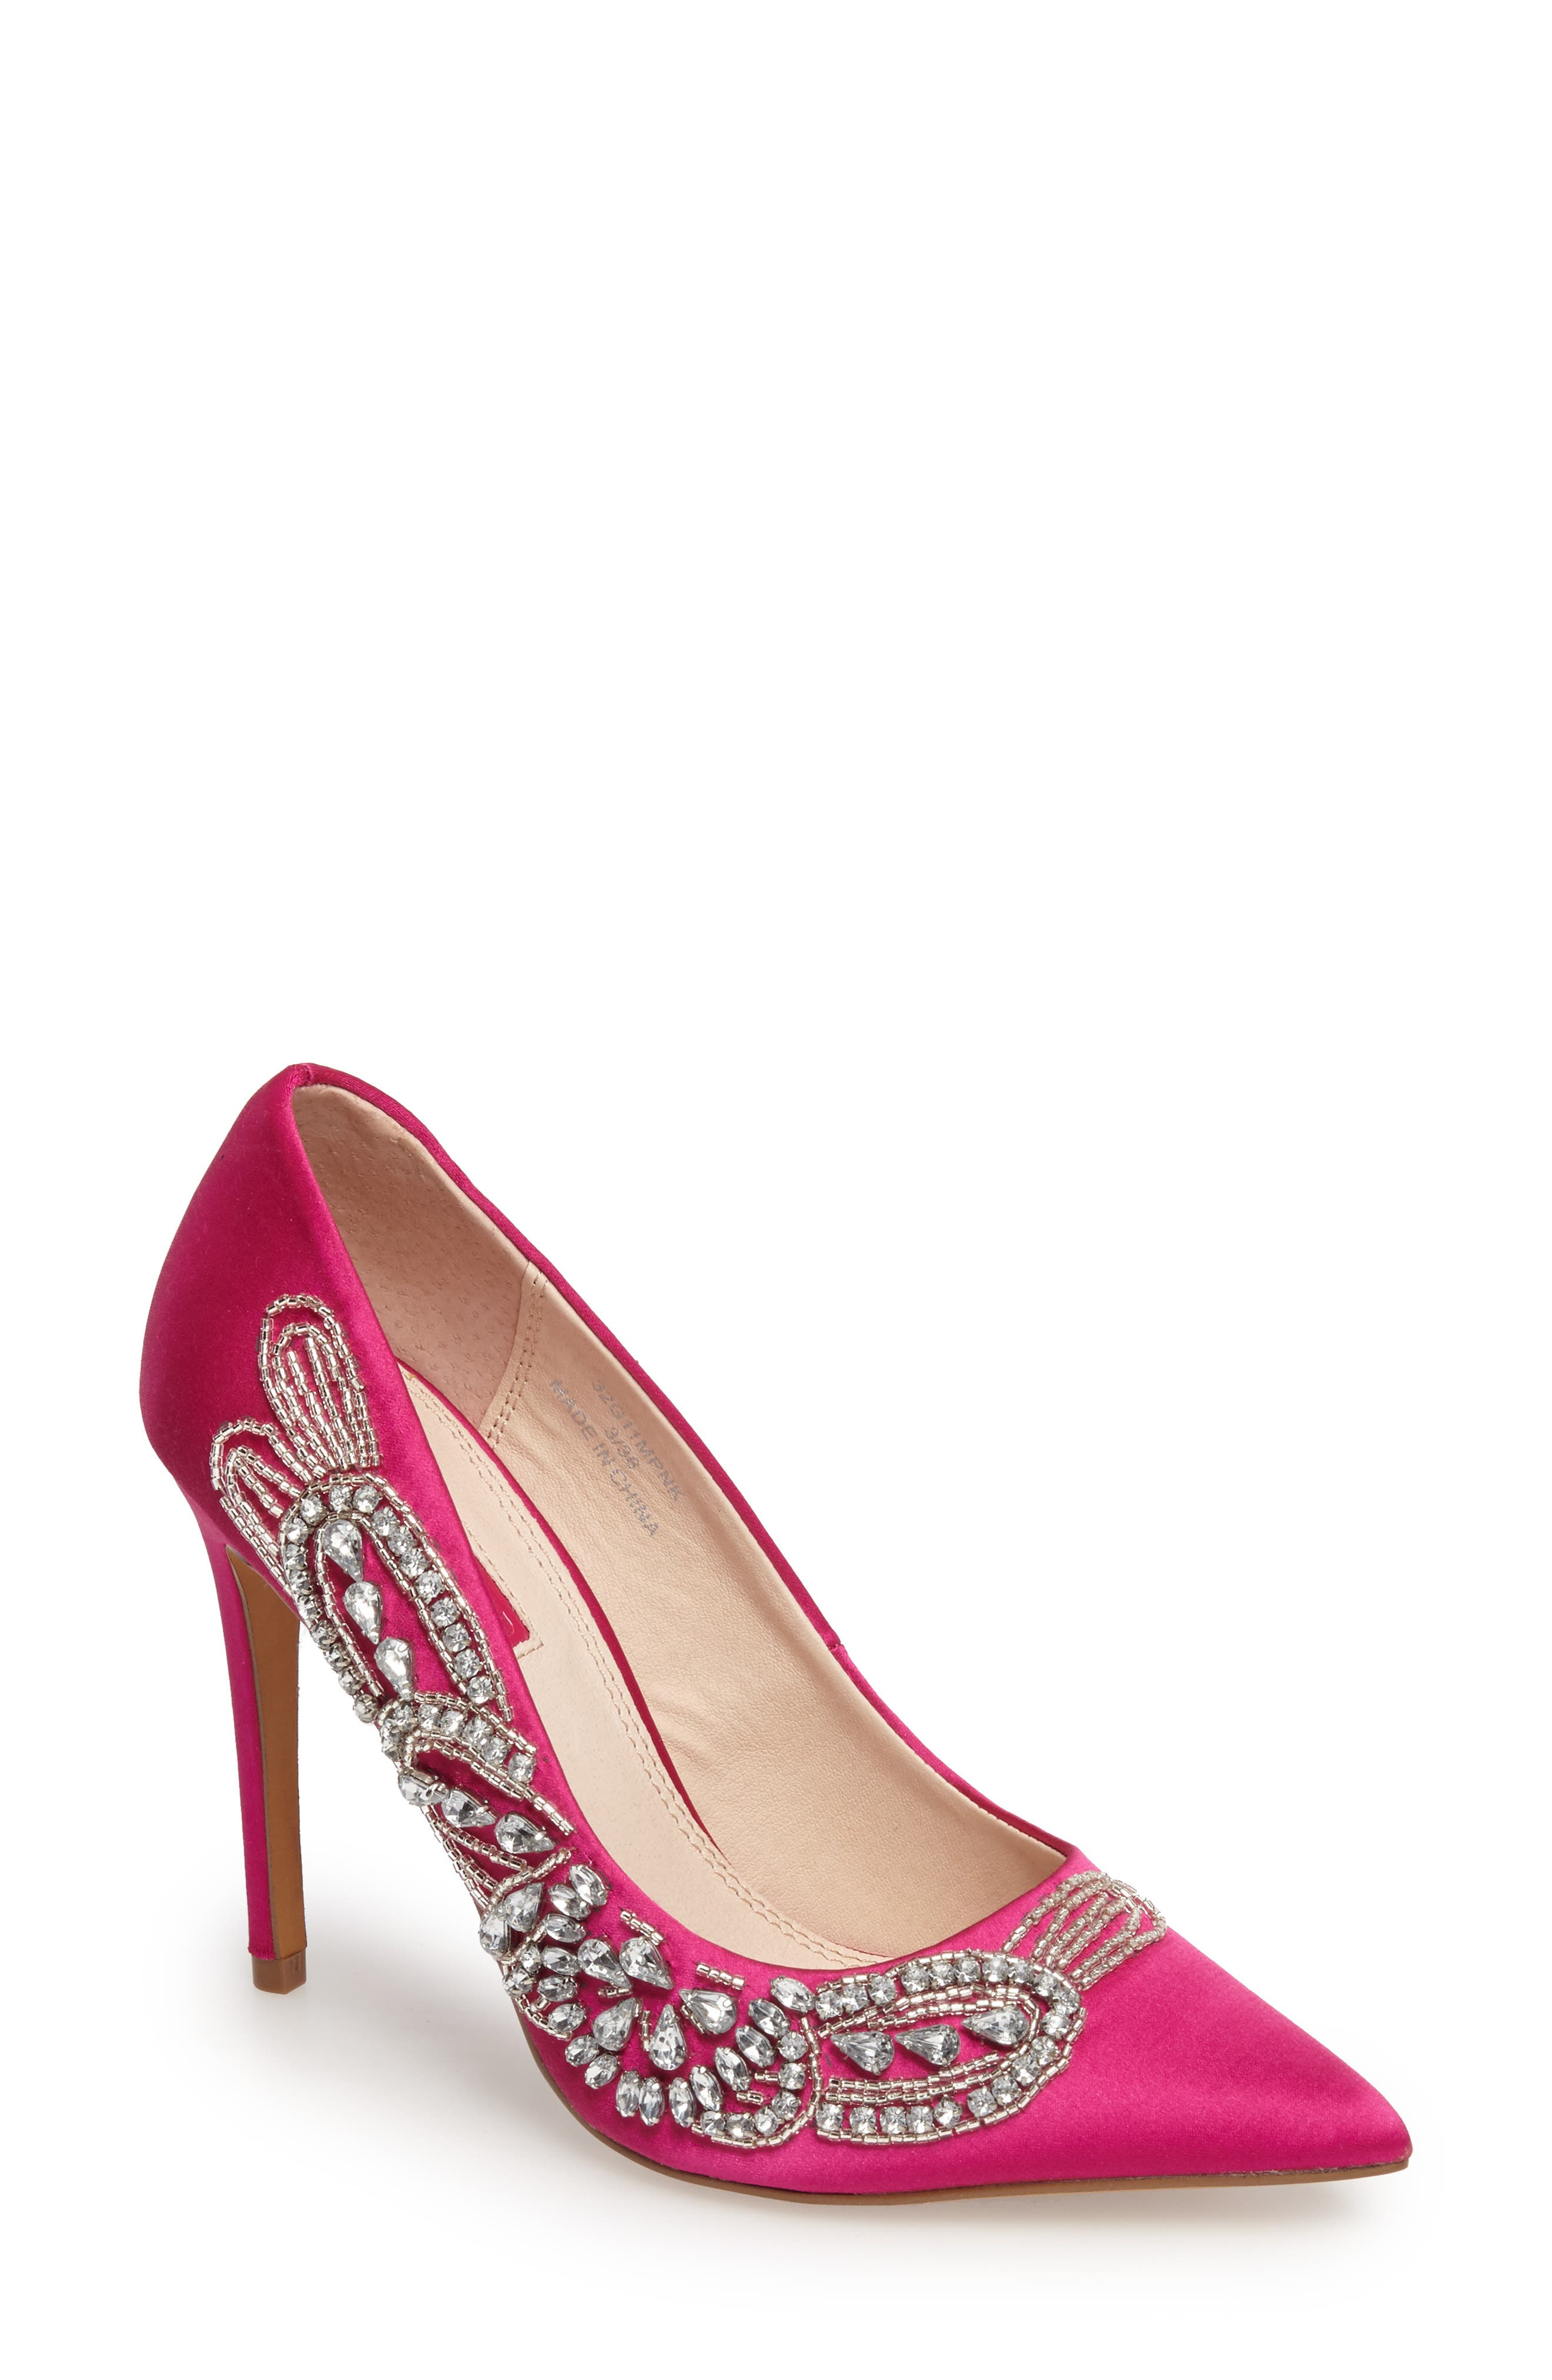 April Embellished Pump,                         Main,                         color, Pink Multi